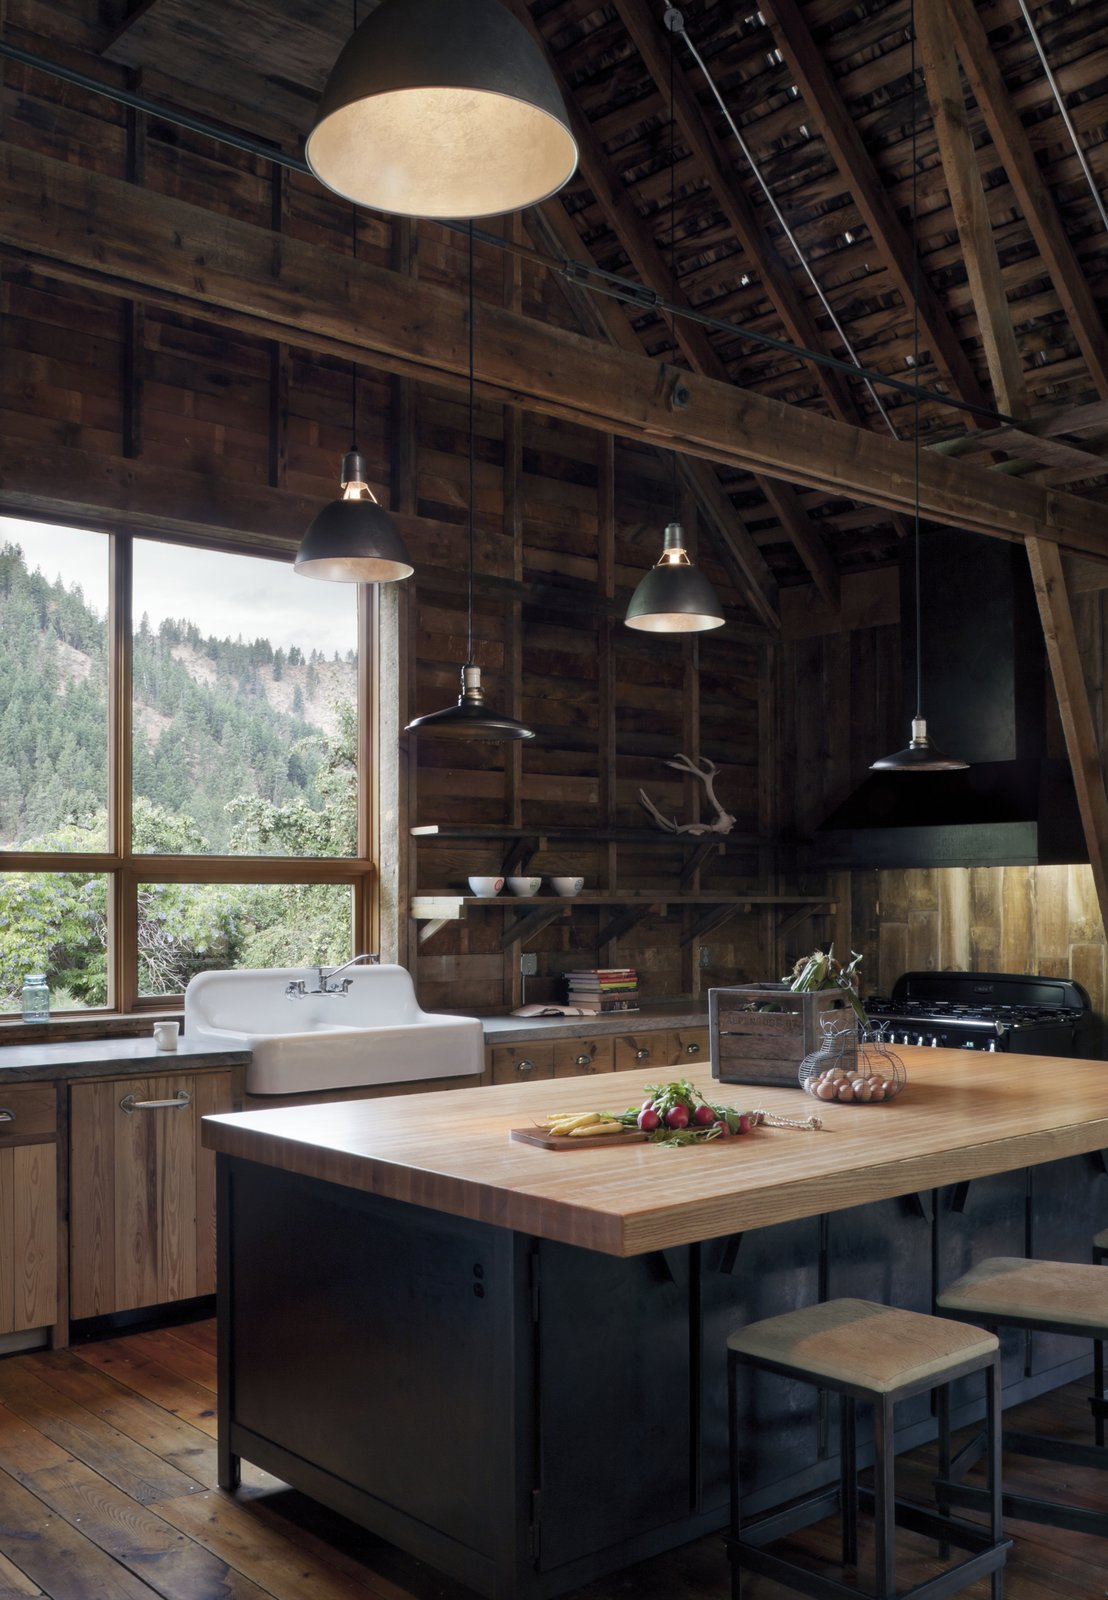 Kitchen, Wood Backsplashe, Medium Hardwood Floor, Wood Counter, Pendant Lighting, Drop In Sink, Range, and Vessel Sink Canyon Barn  Best Photos from c